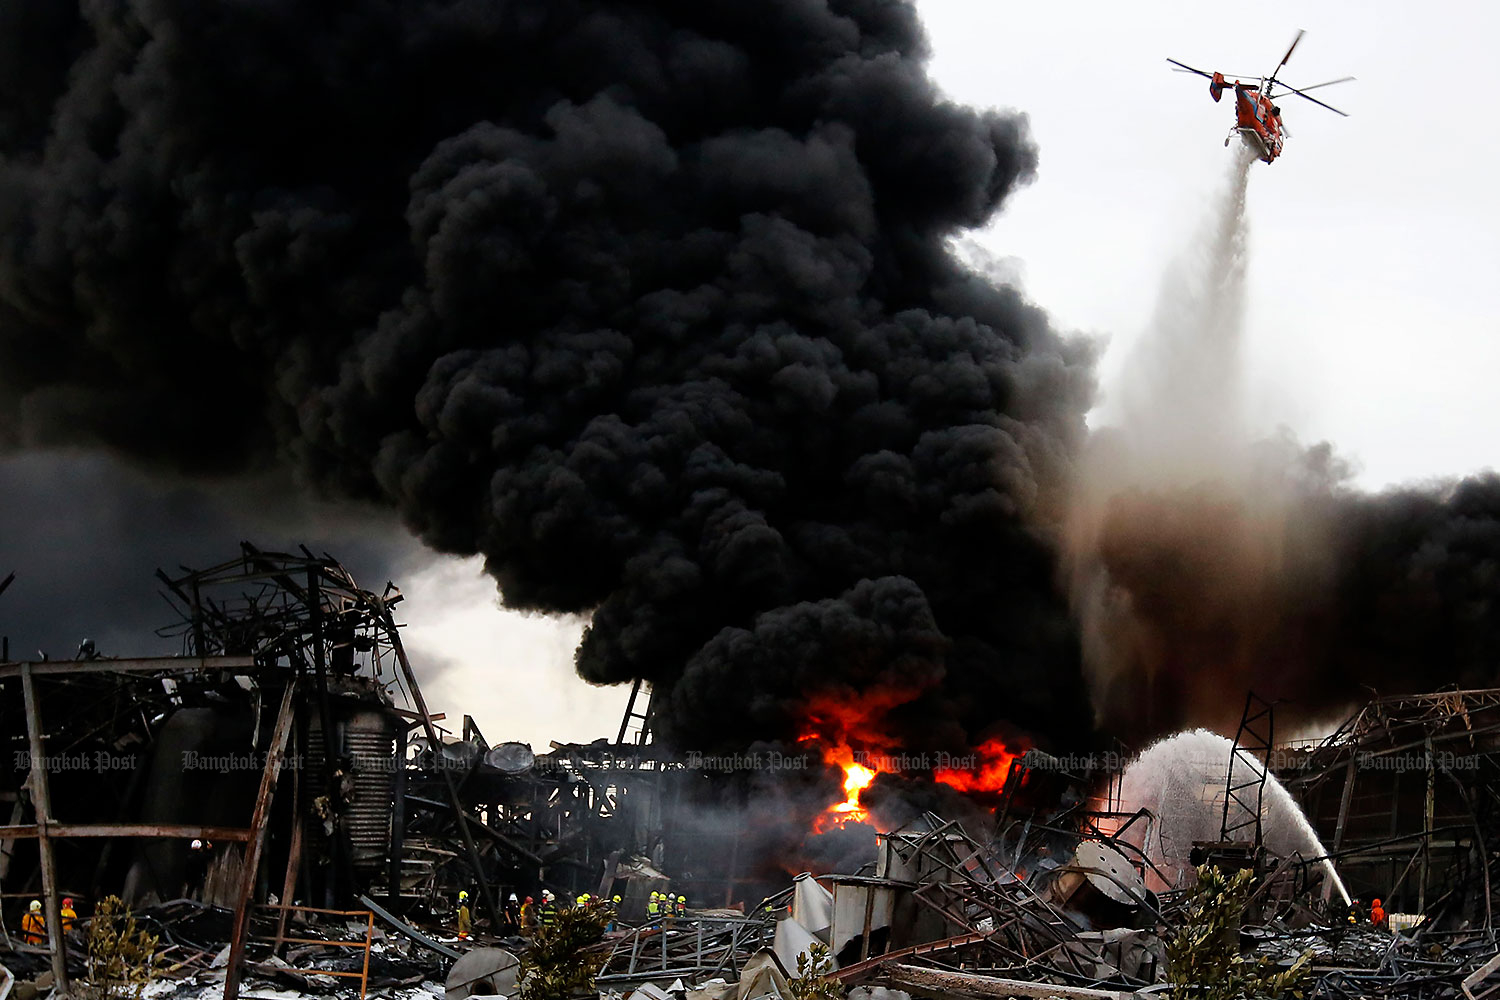 A helicopter drops fire-retardant foam to battle the chemical fire at Ming Dih Chemical Co factory in Samut Prakan that killed one rescuer and injured at least 39 and prompted the evacuation of people within a 5-km radius.(Photo: Wichan Charoenkiatpakul)